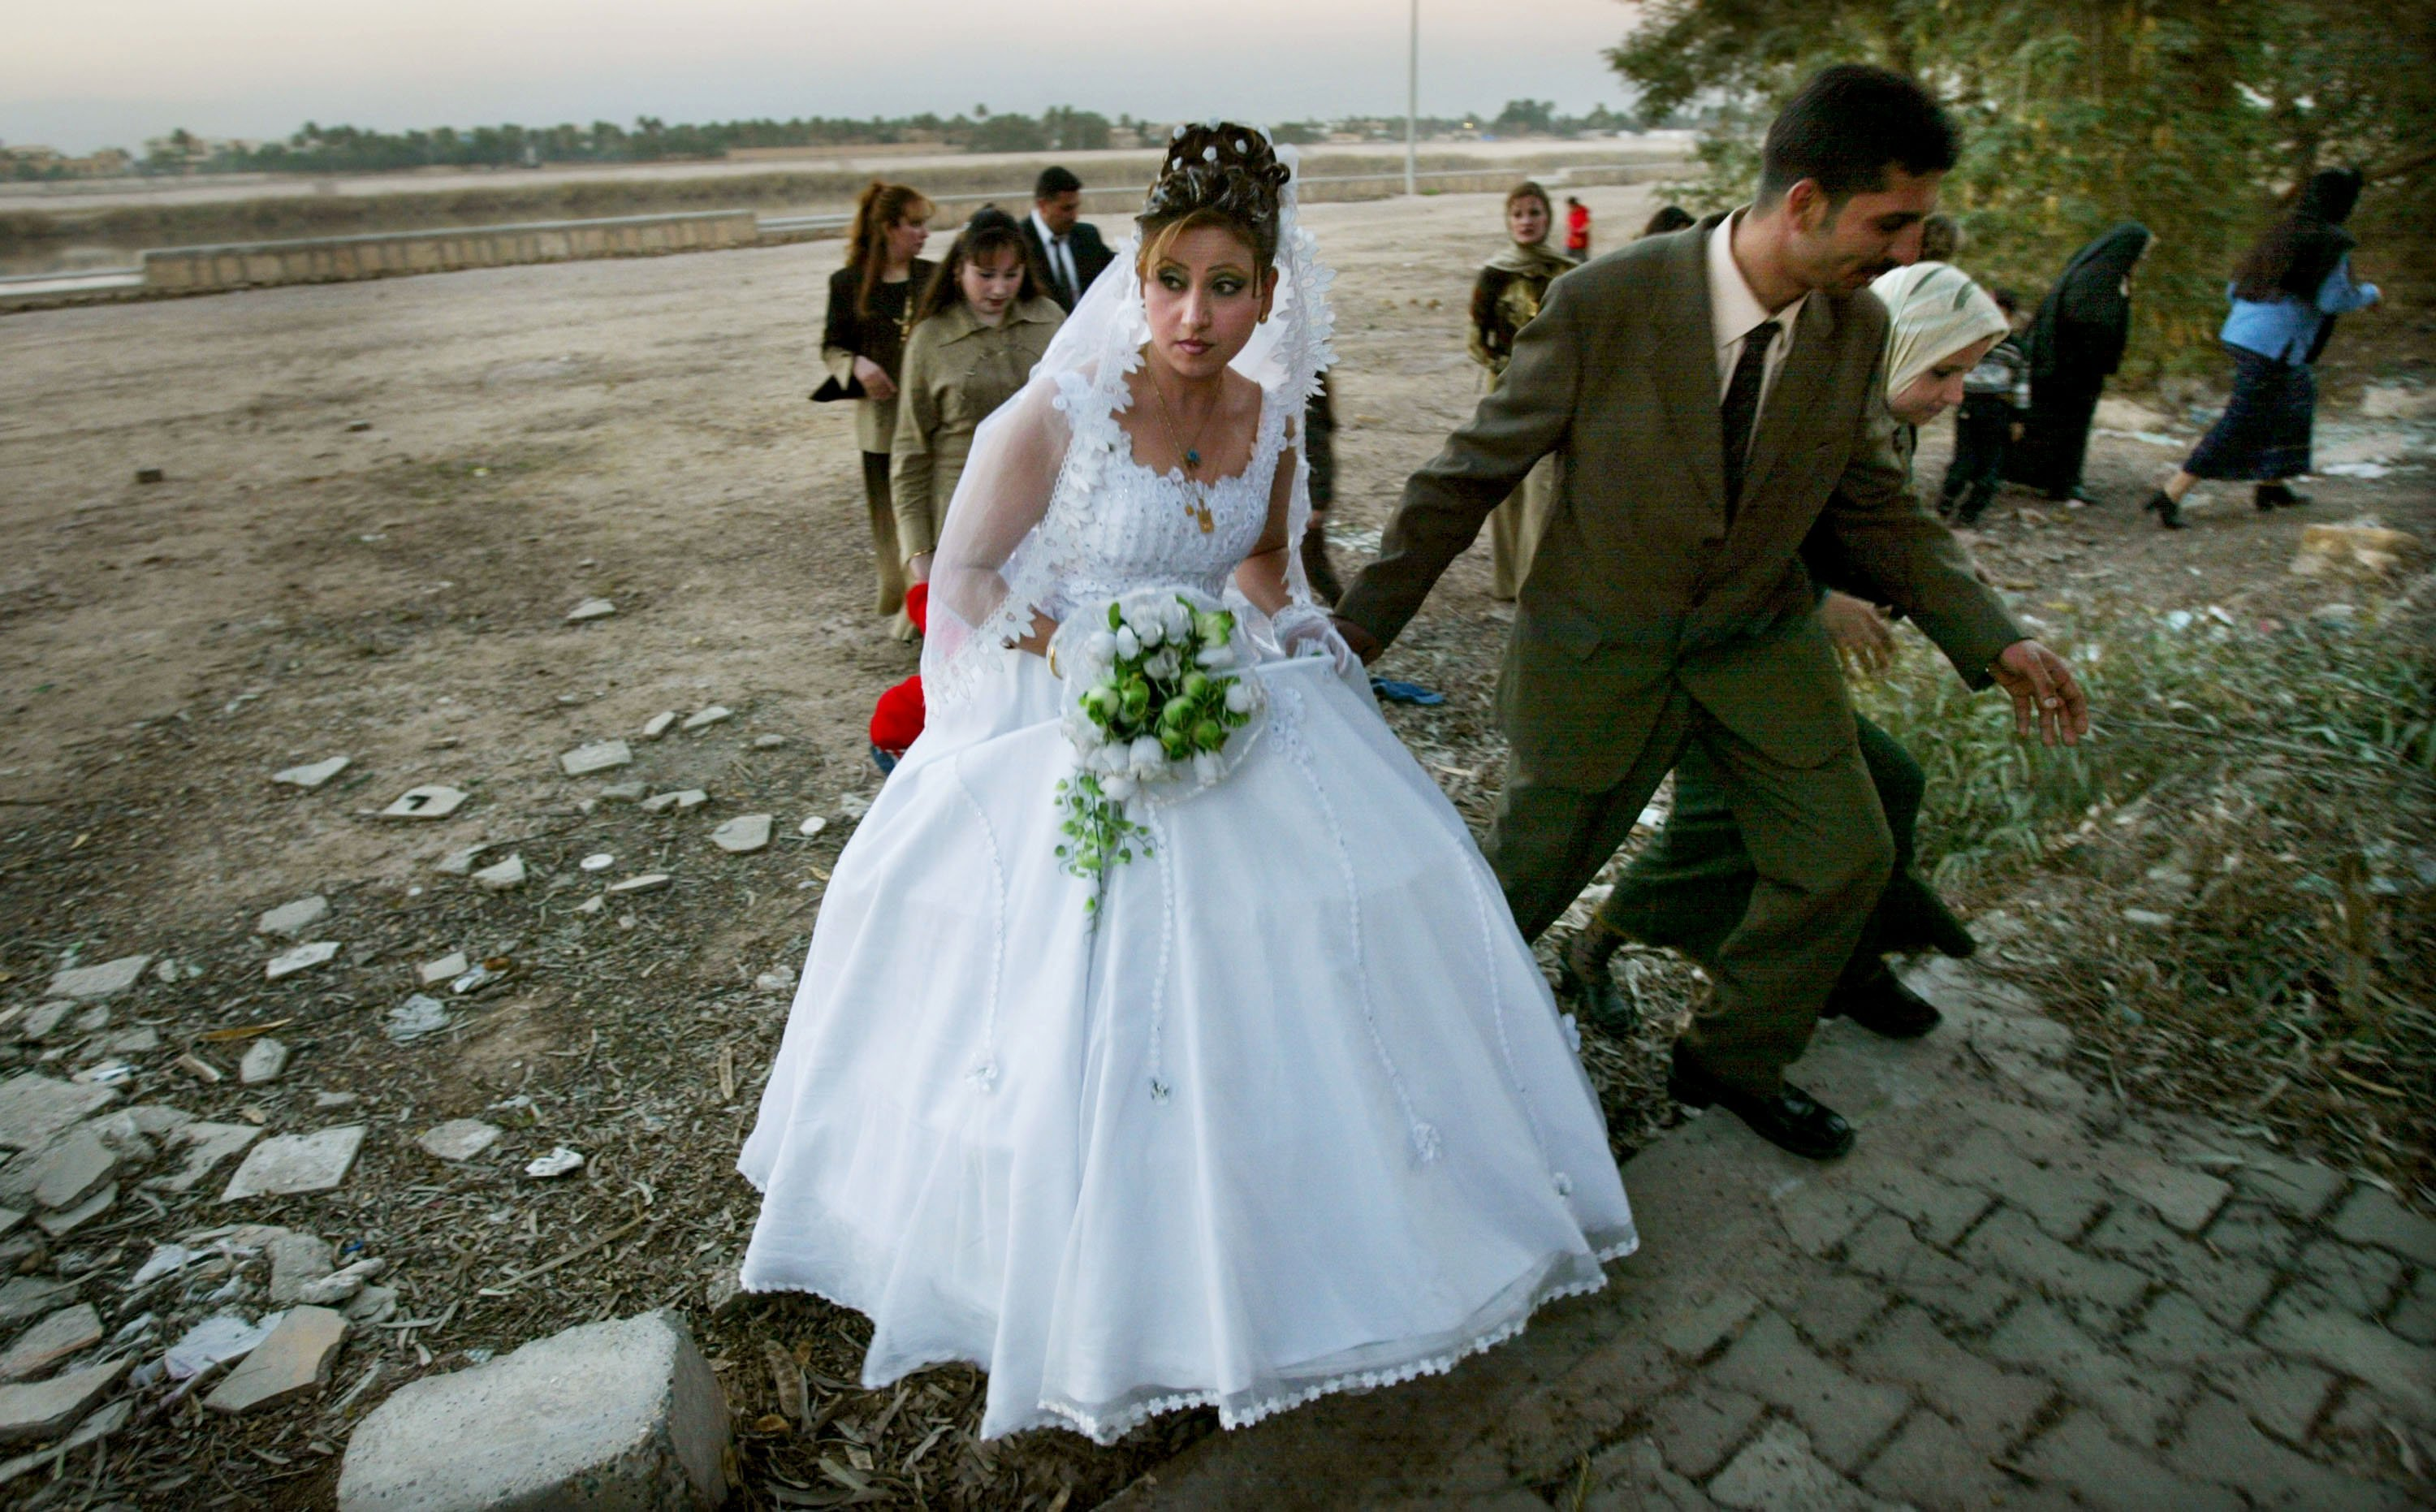 A newly married Iraqi couple walks away from the banks of the Tigris River after posing for photographs February 9, 2004 in Baghdad, Iraq. | Getty Images :photo